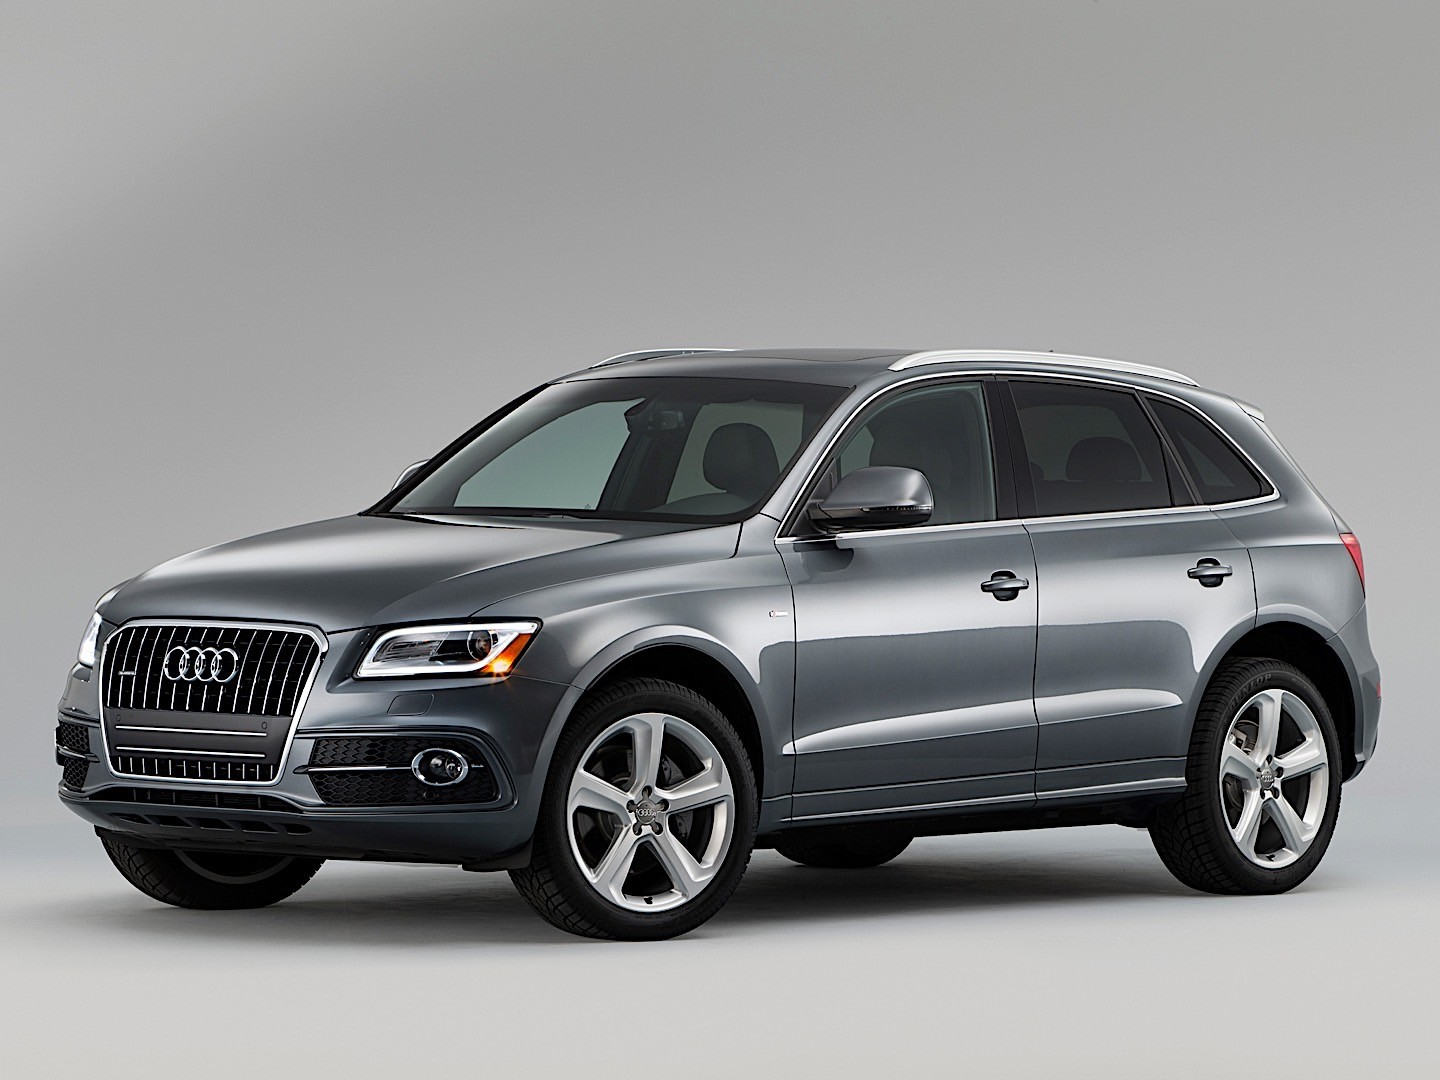 Audi Q5 Specs Photos 2012 2013 2014 2015 2016 Autoevolution